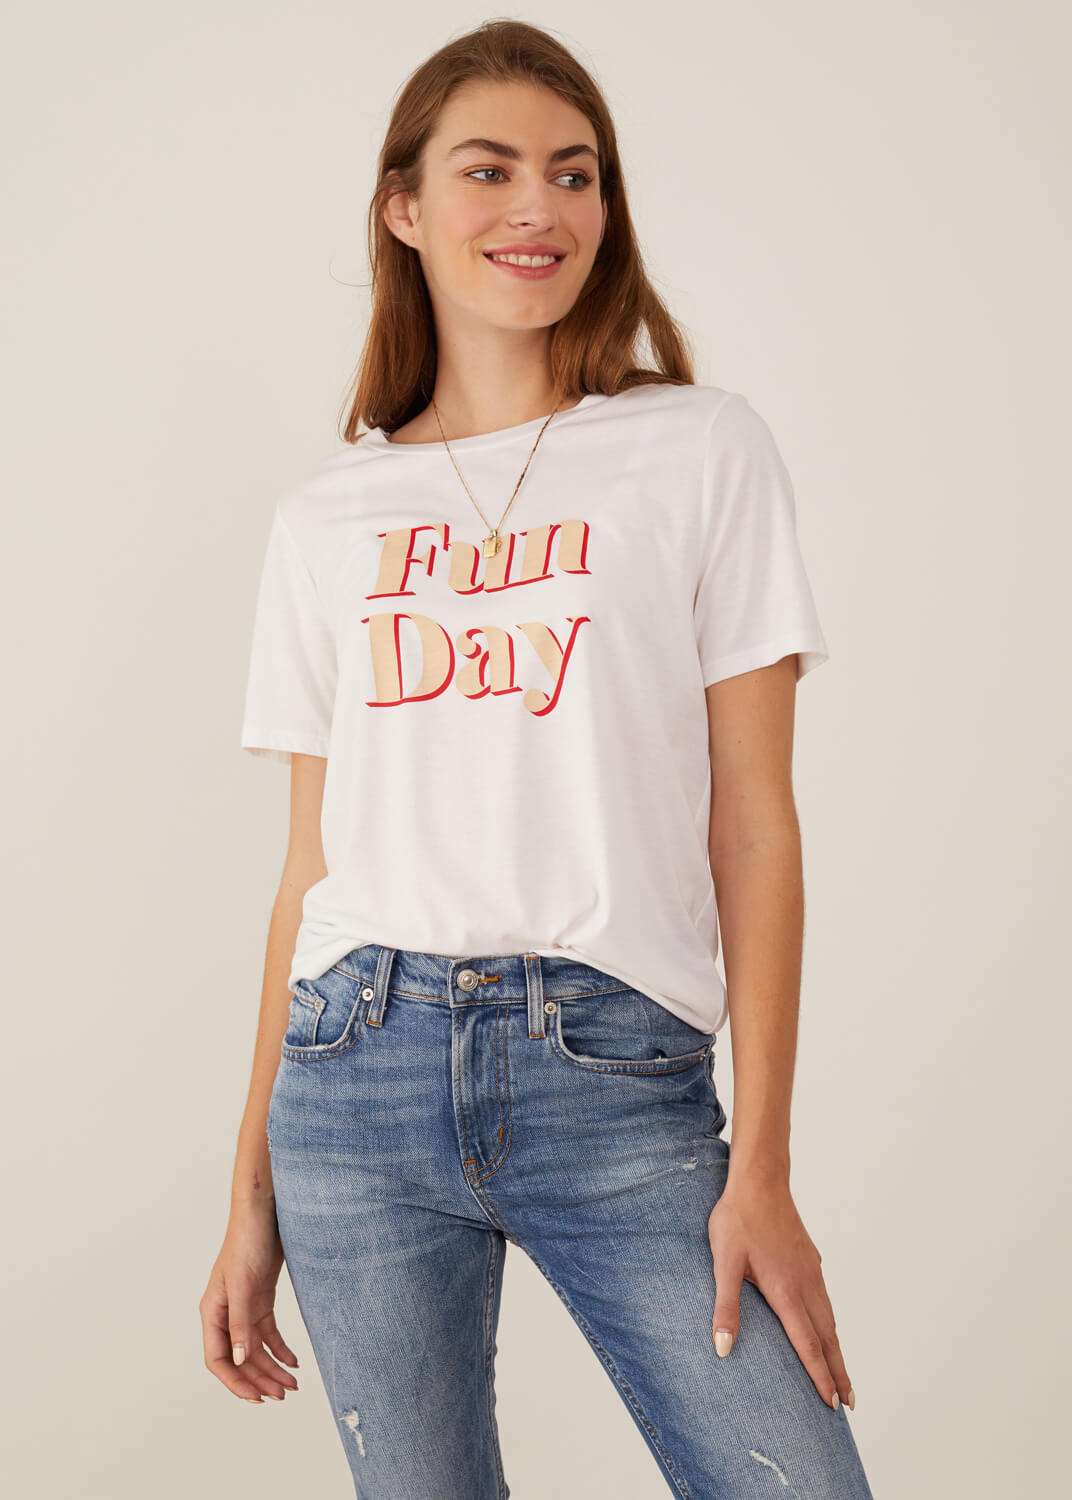 Lola - Loose Tee - Funday - White